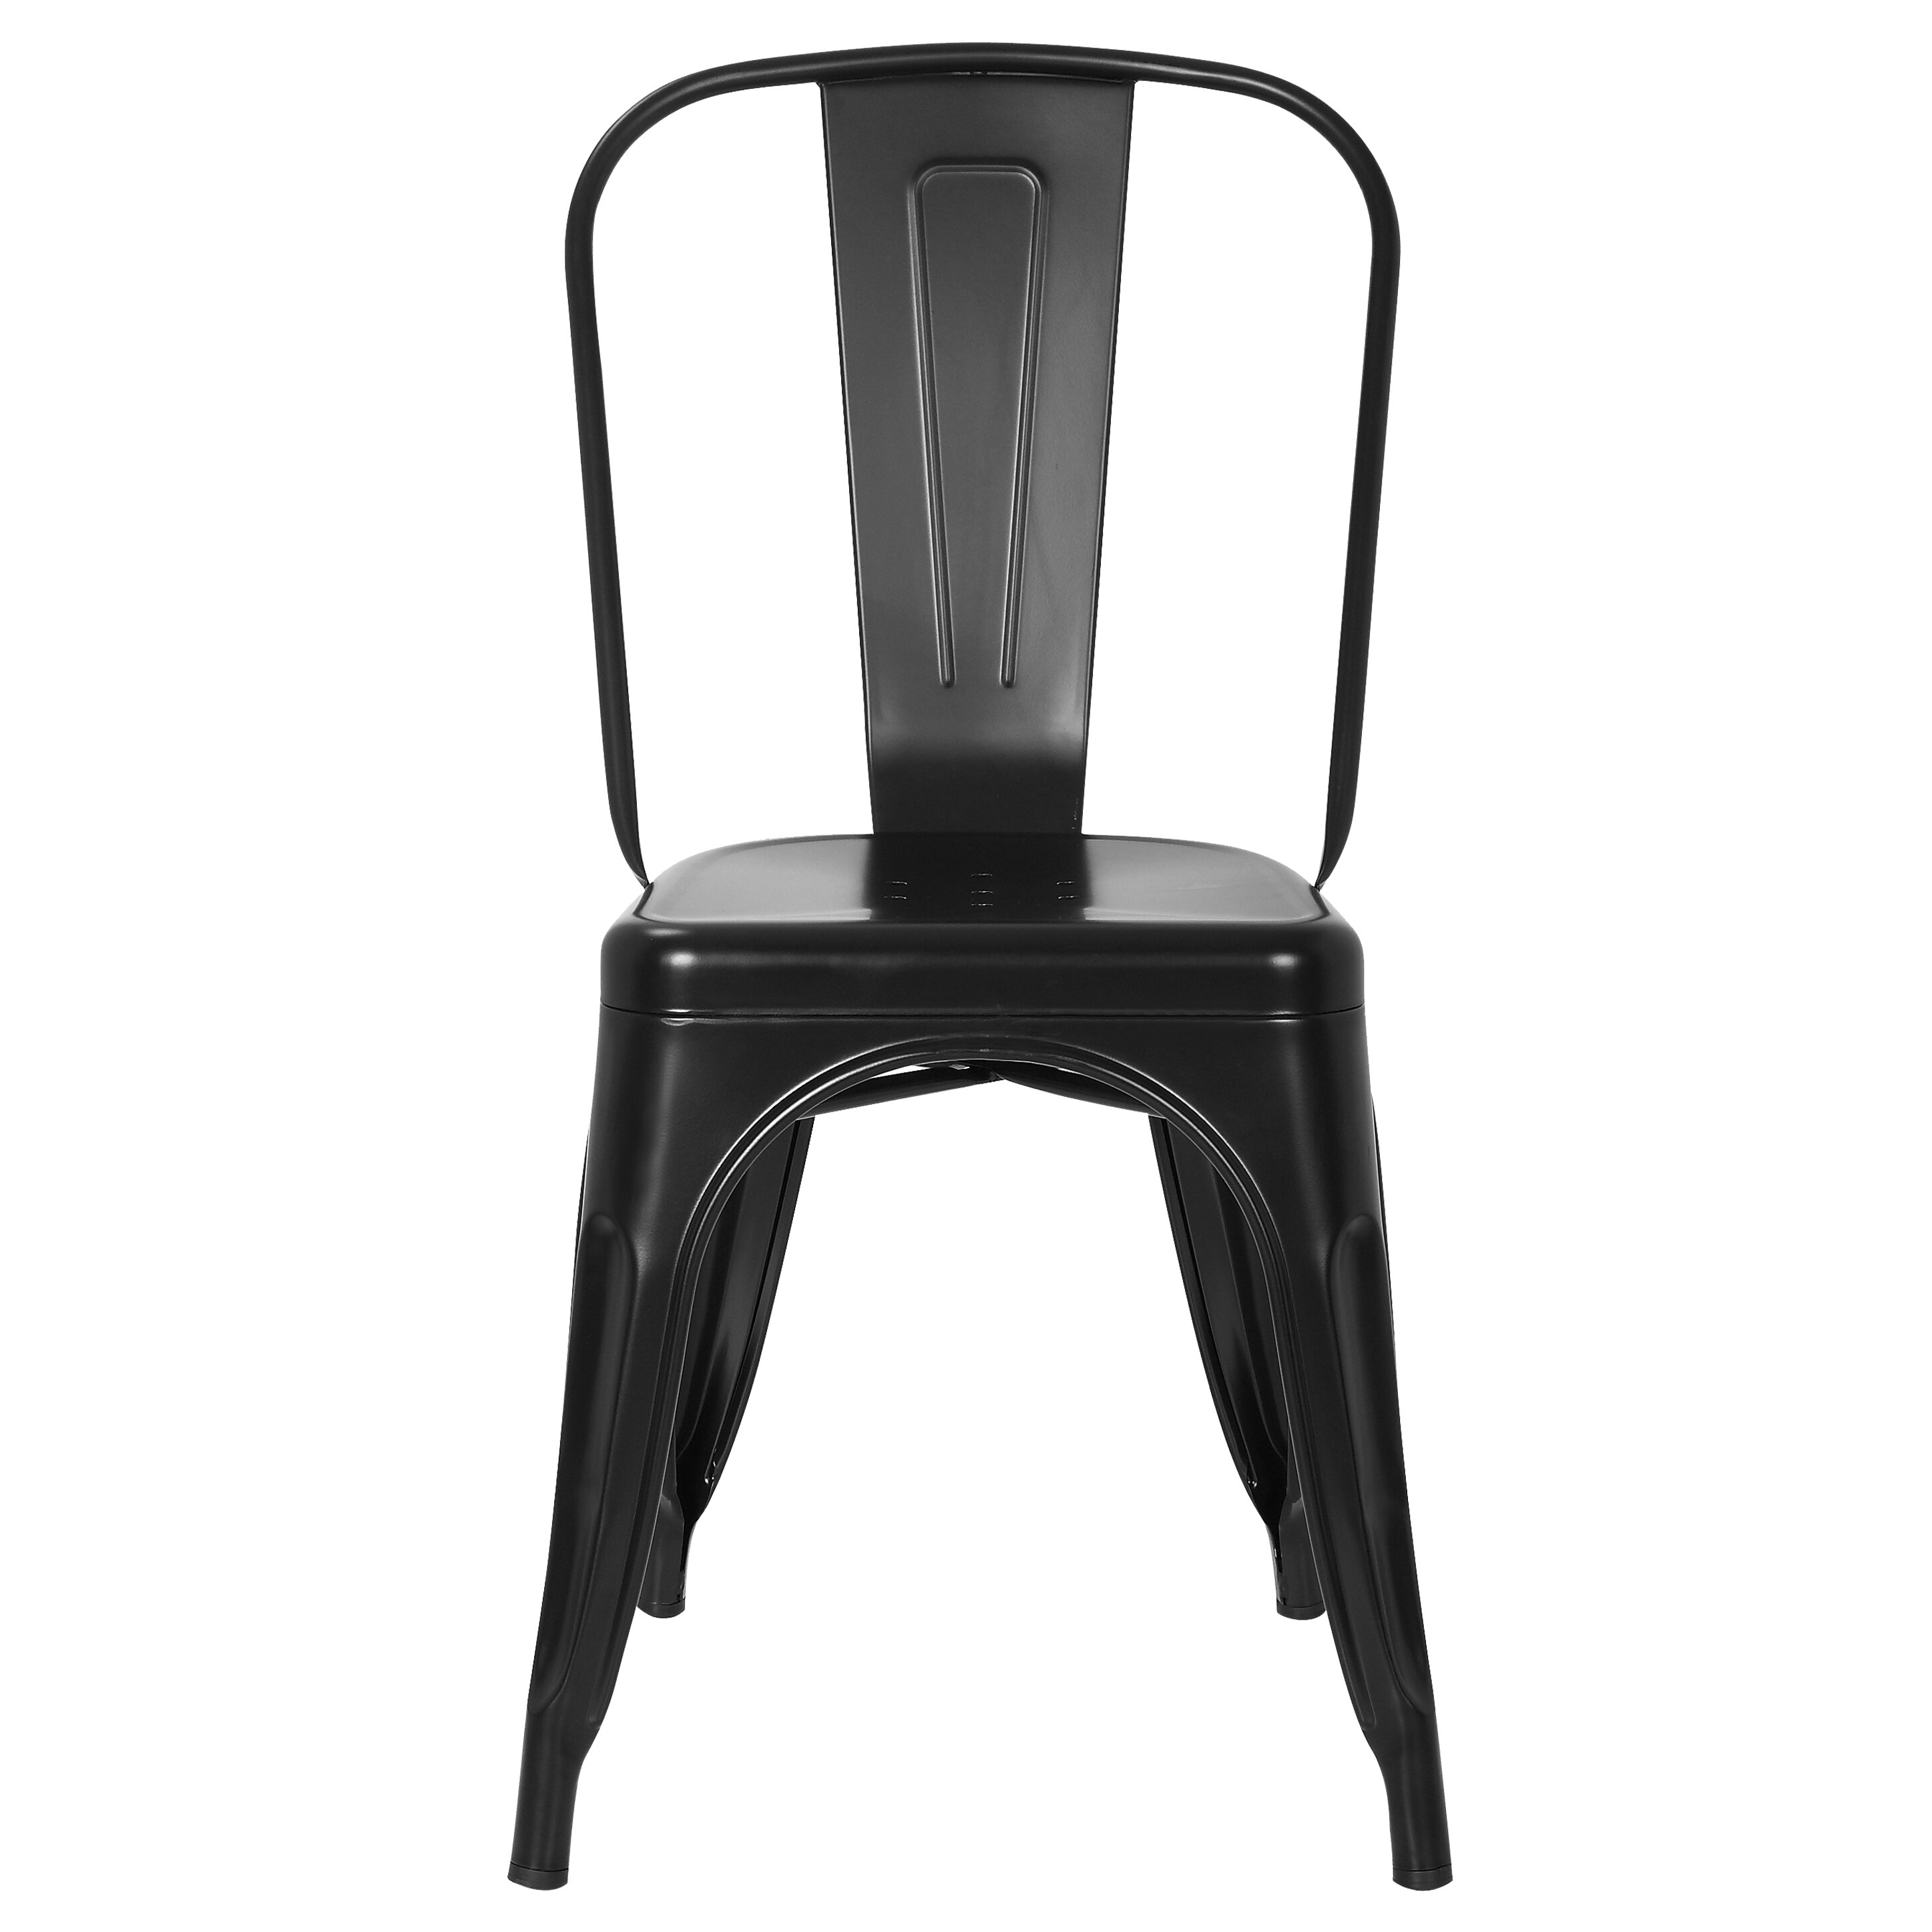 Super Chelsea Dining Chair Gmtry Best Dining Table And Chair Ideas Images Gmtryco